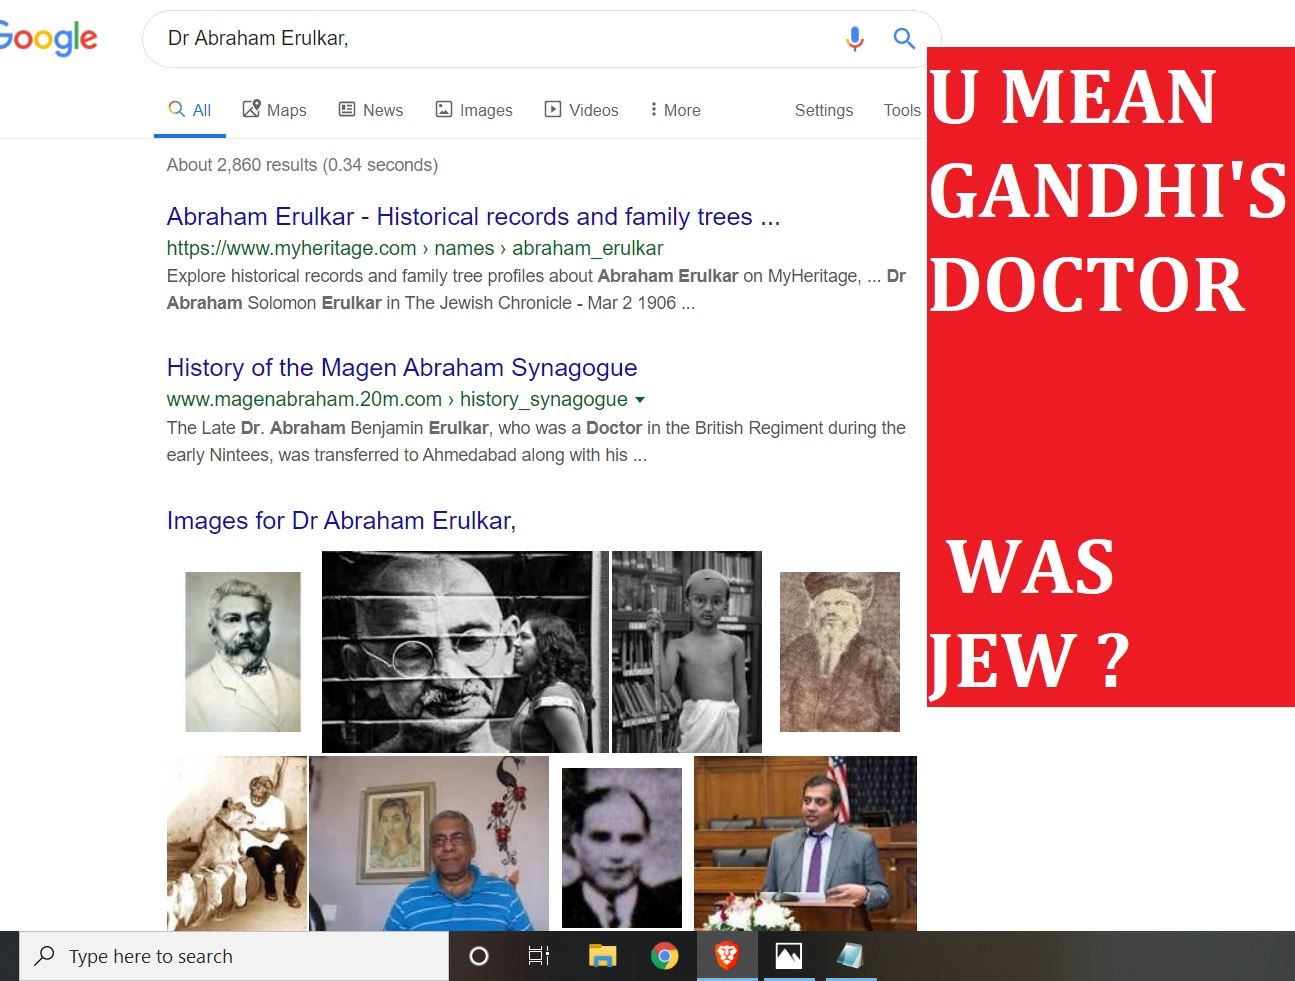 U MEAN GANDHI'S DOCTOR WAS JEW